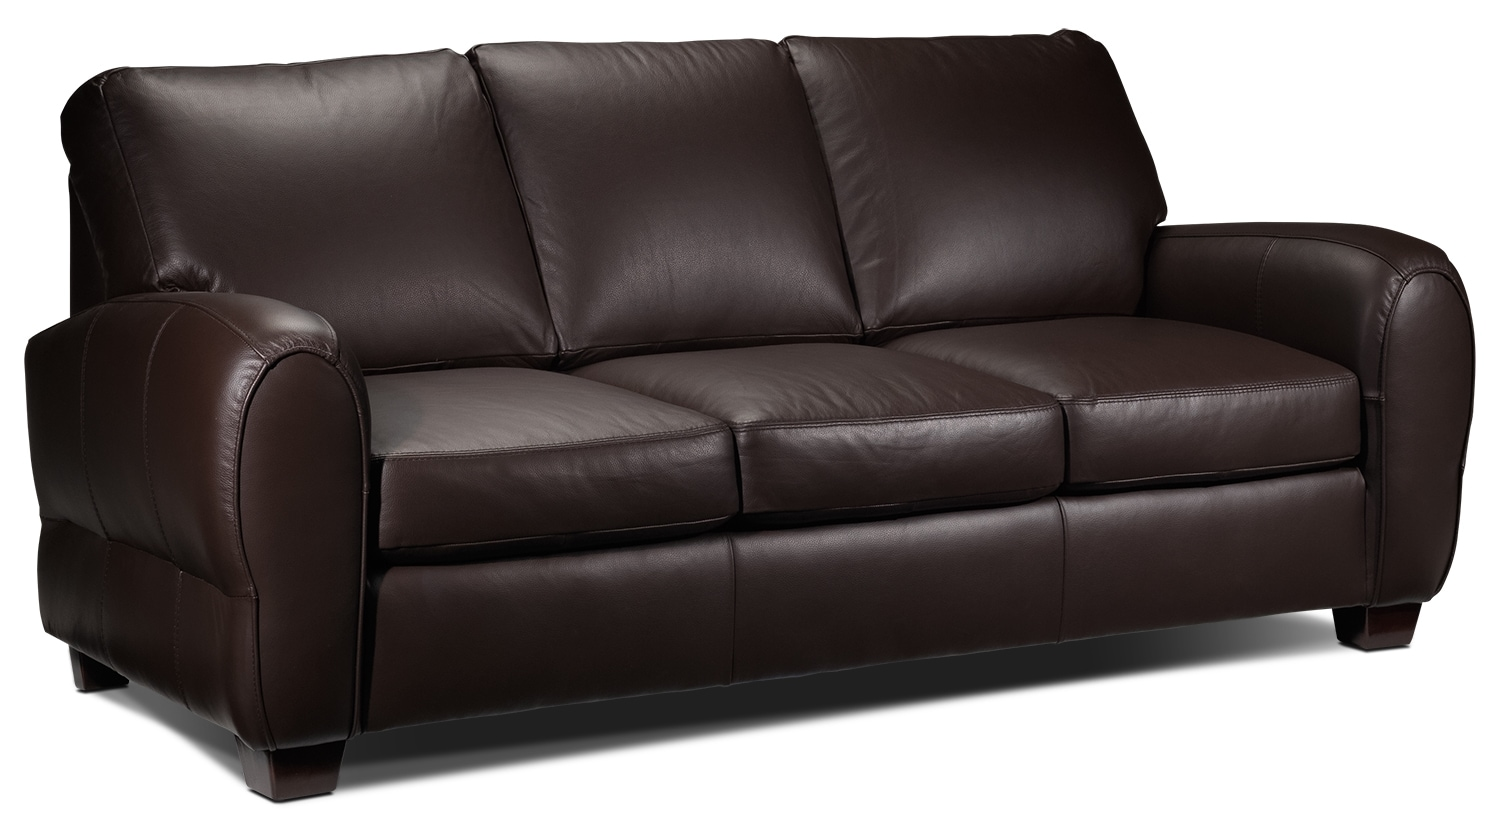 Living Room Furniture - Sheldon Sofa